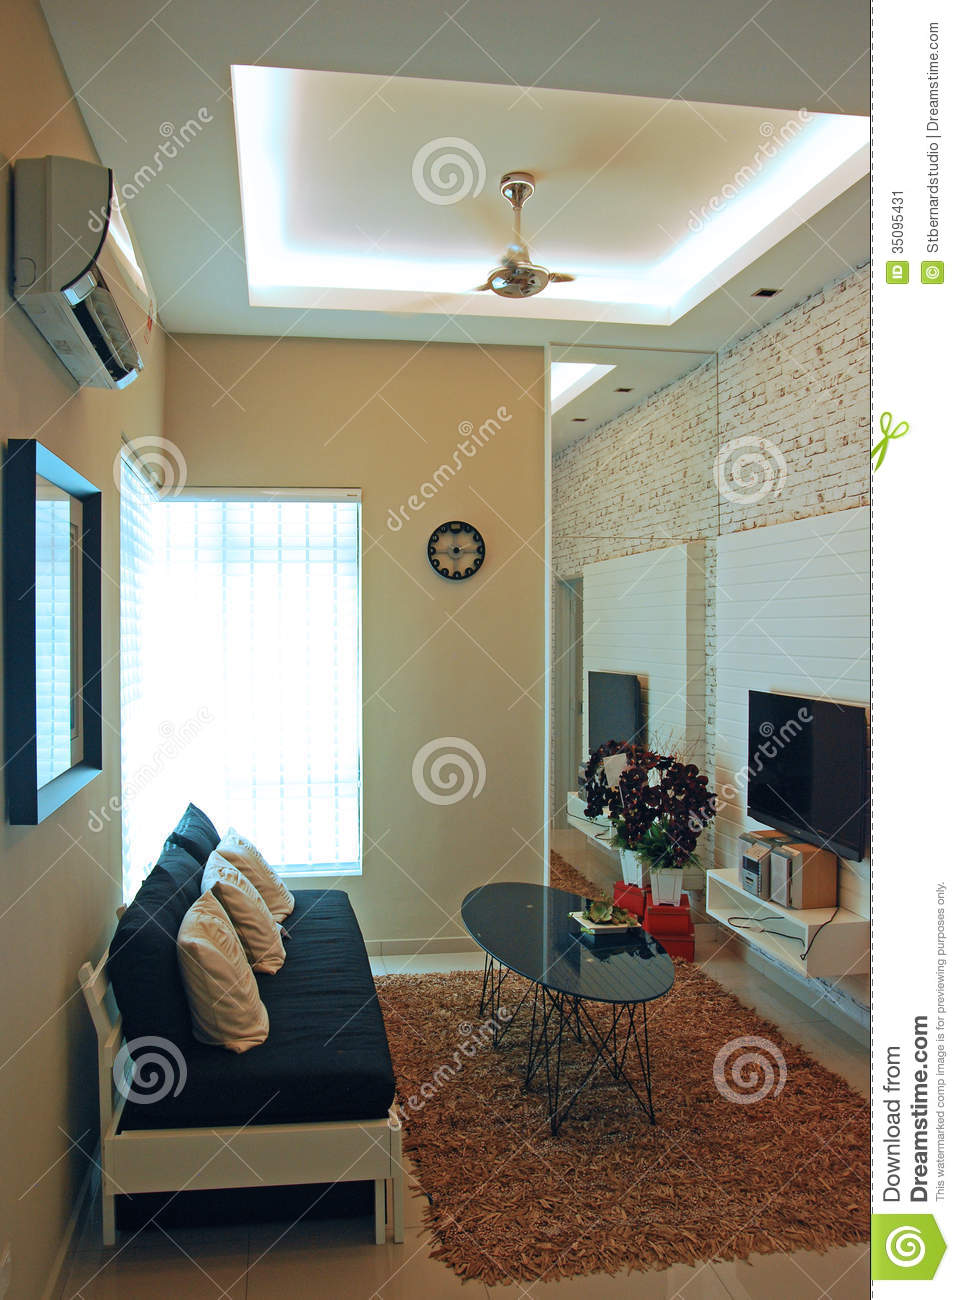 A Compact Living Room Design Stock Image - Image of framed, double